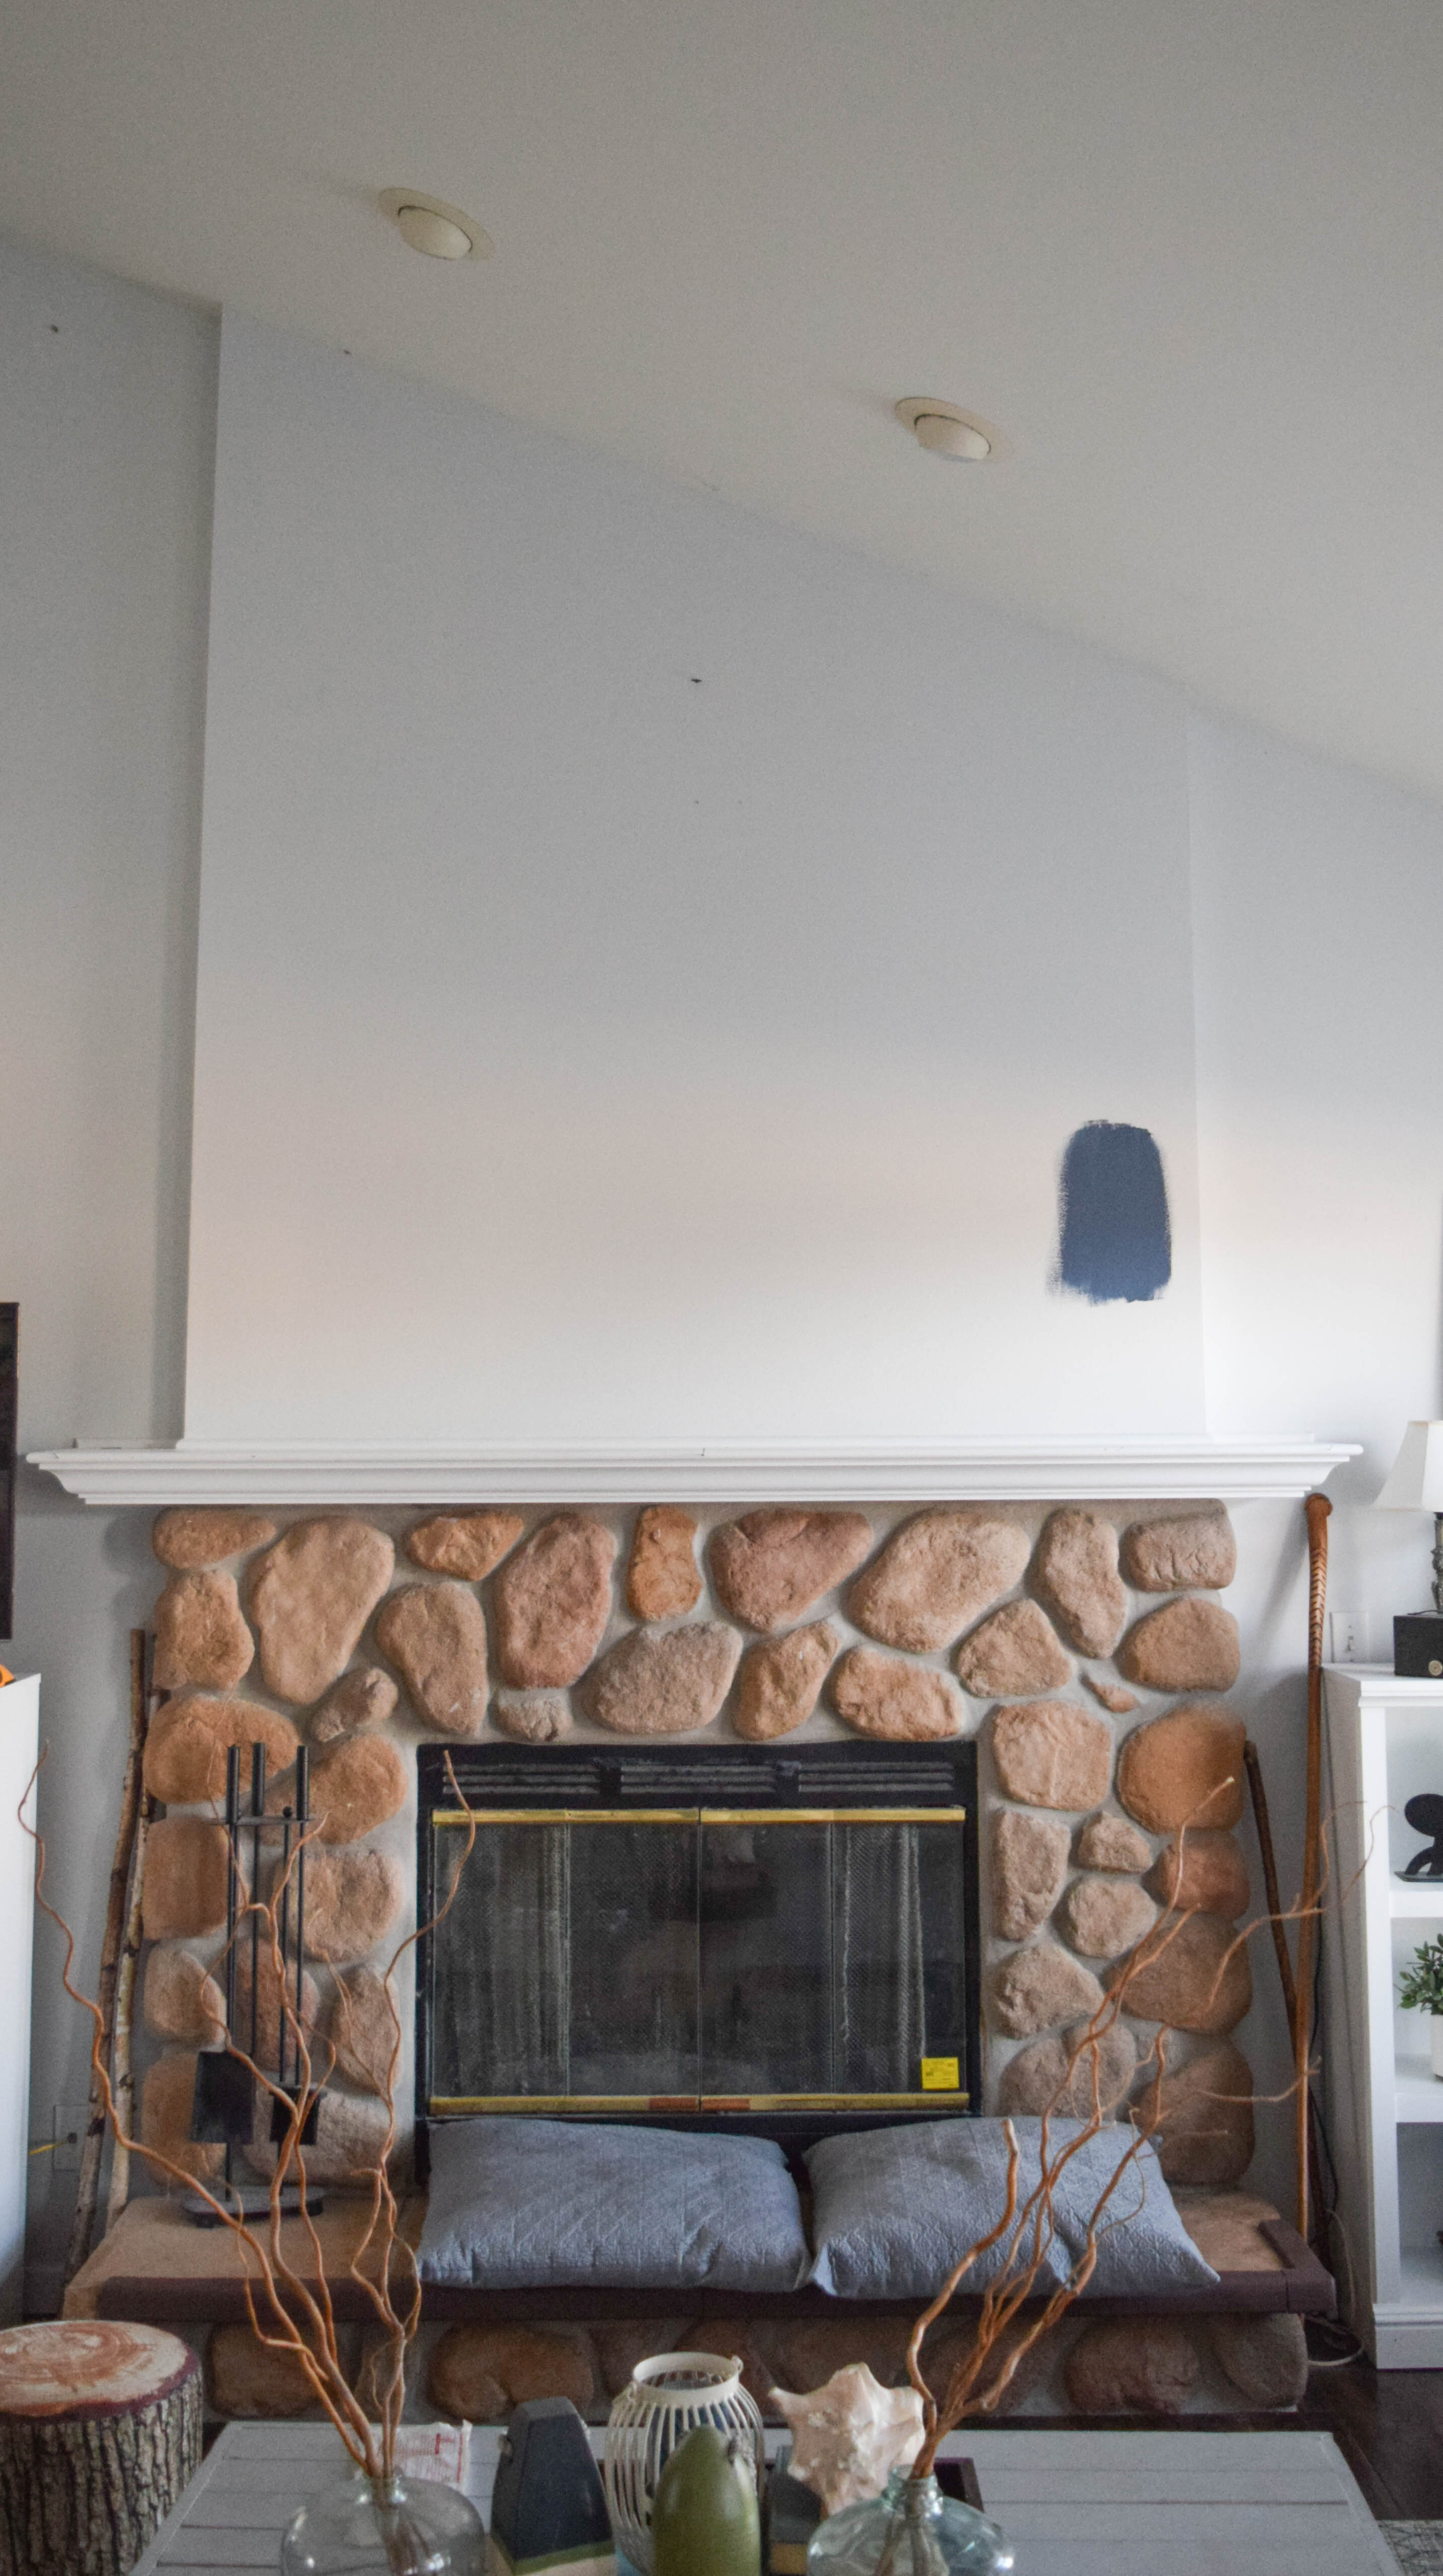 How to create a feature wall with photos - Adding Wood Plank Feature Wall To Fireplace Before Picture